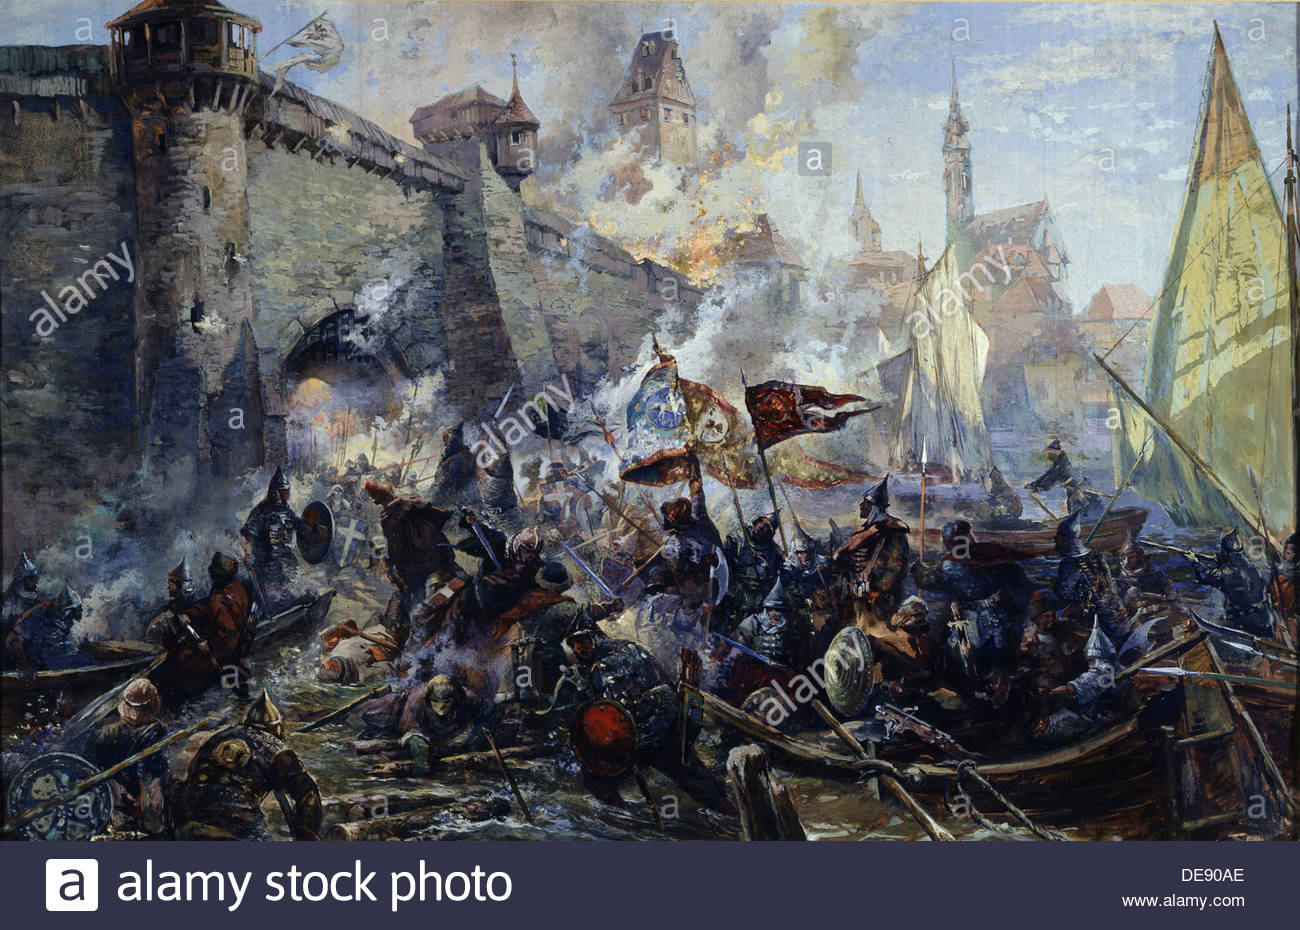 The Russian Army capturing Narva on May 11, 1558, 1956. Artist: Blinkov, Alexander Alexandrovich (1911-1995) - Stock Image